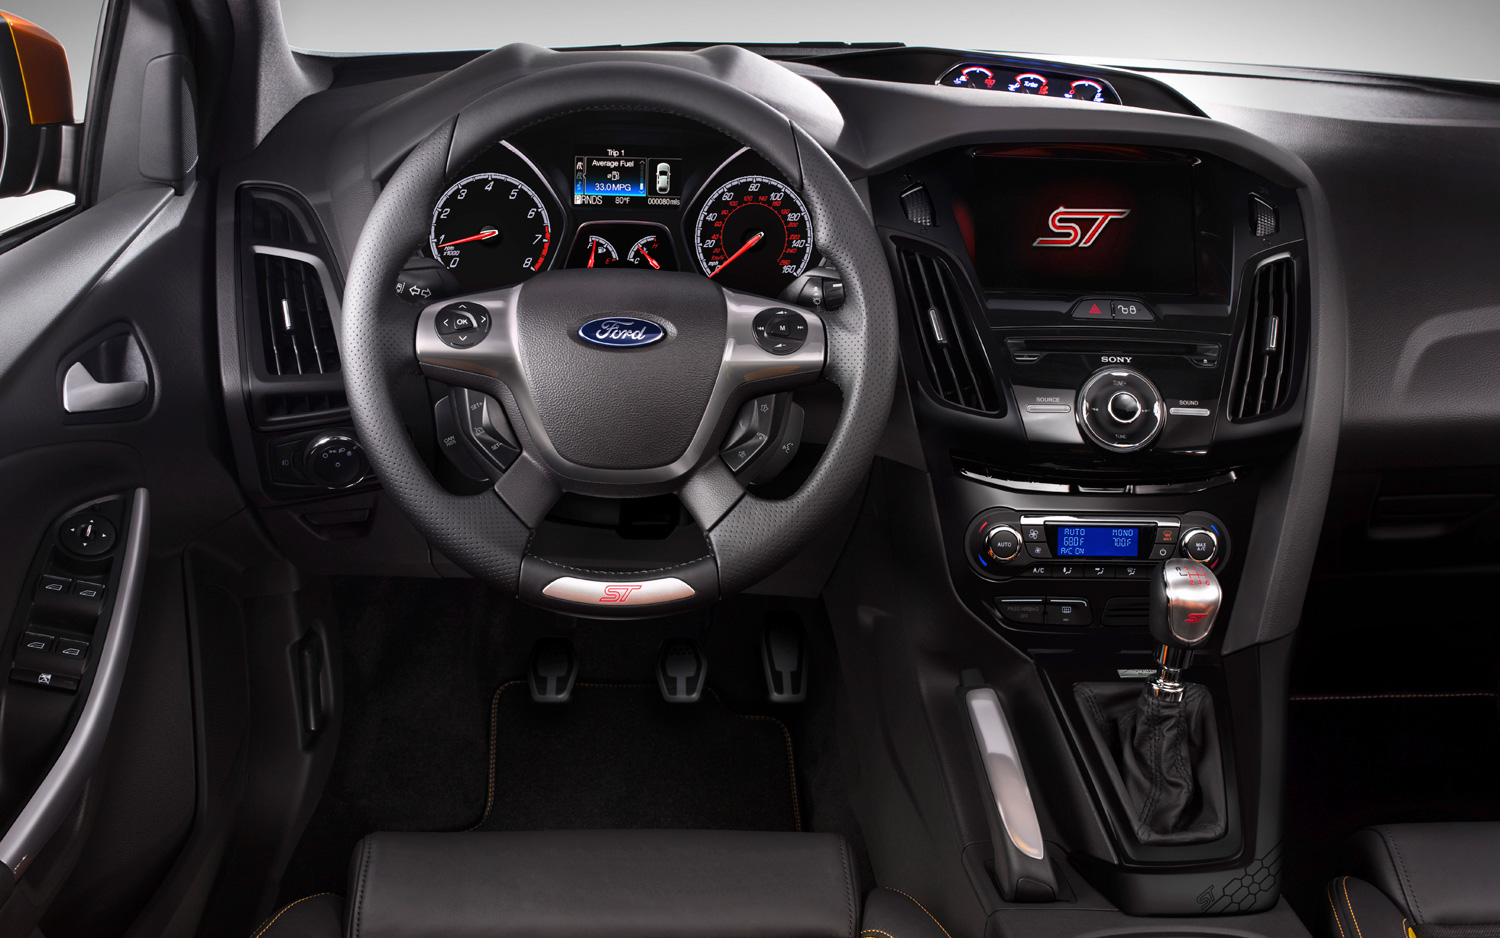 2013 Ford Focus St #11